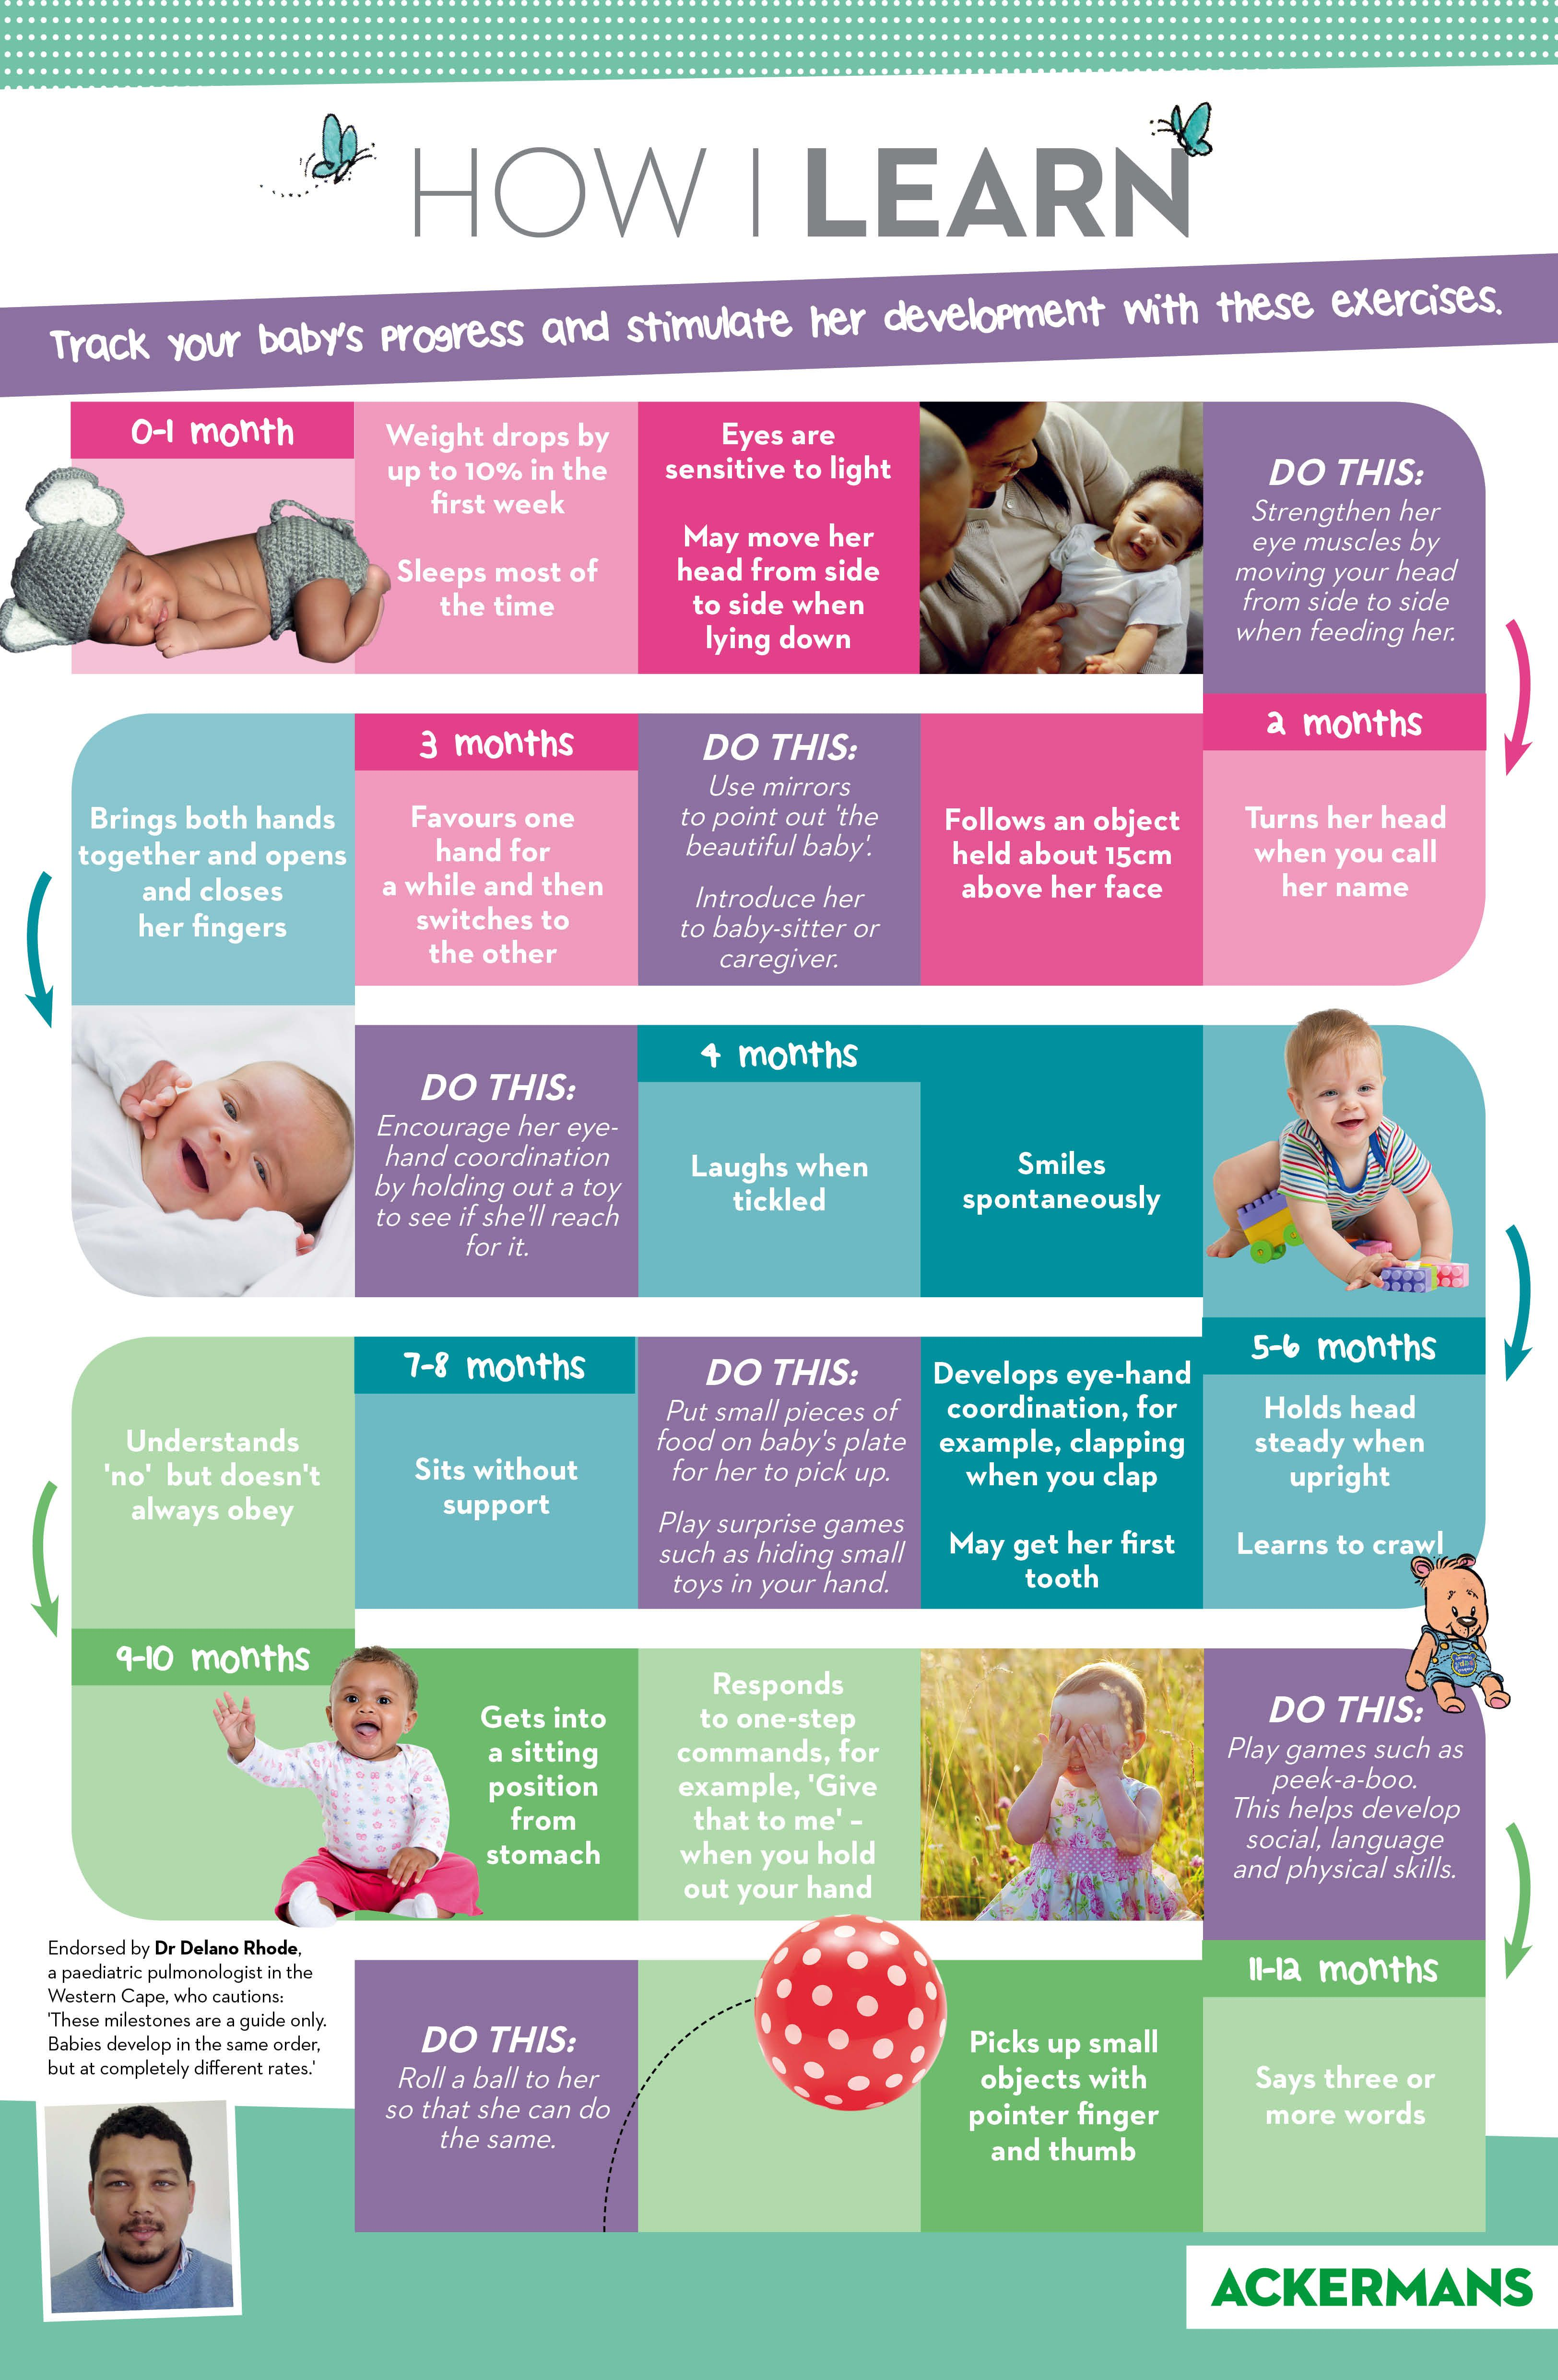 Track your baby's progress and stimulate her development with these exercises.